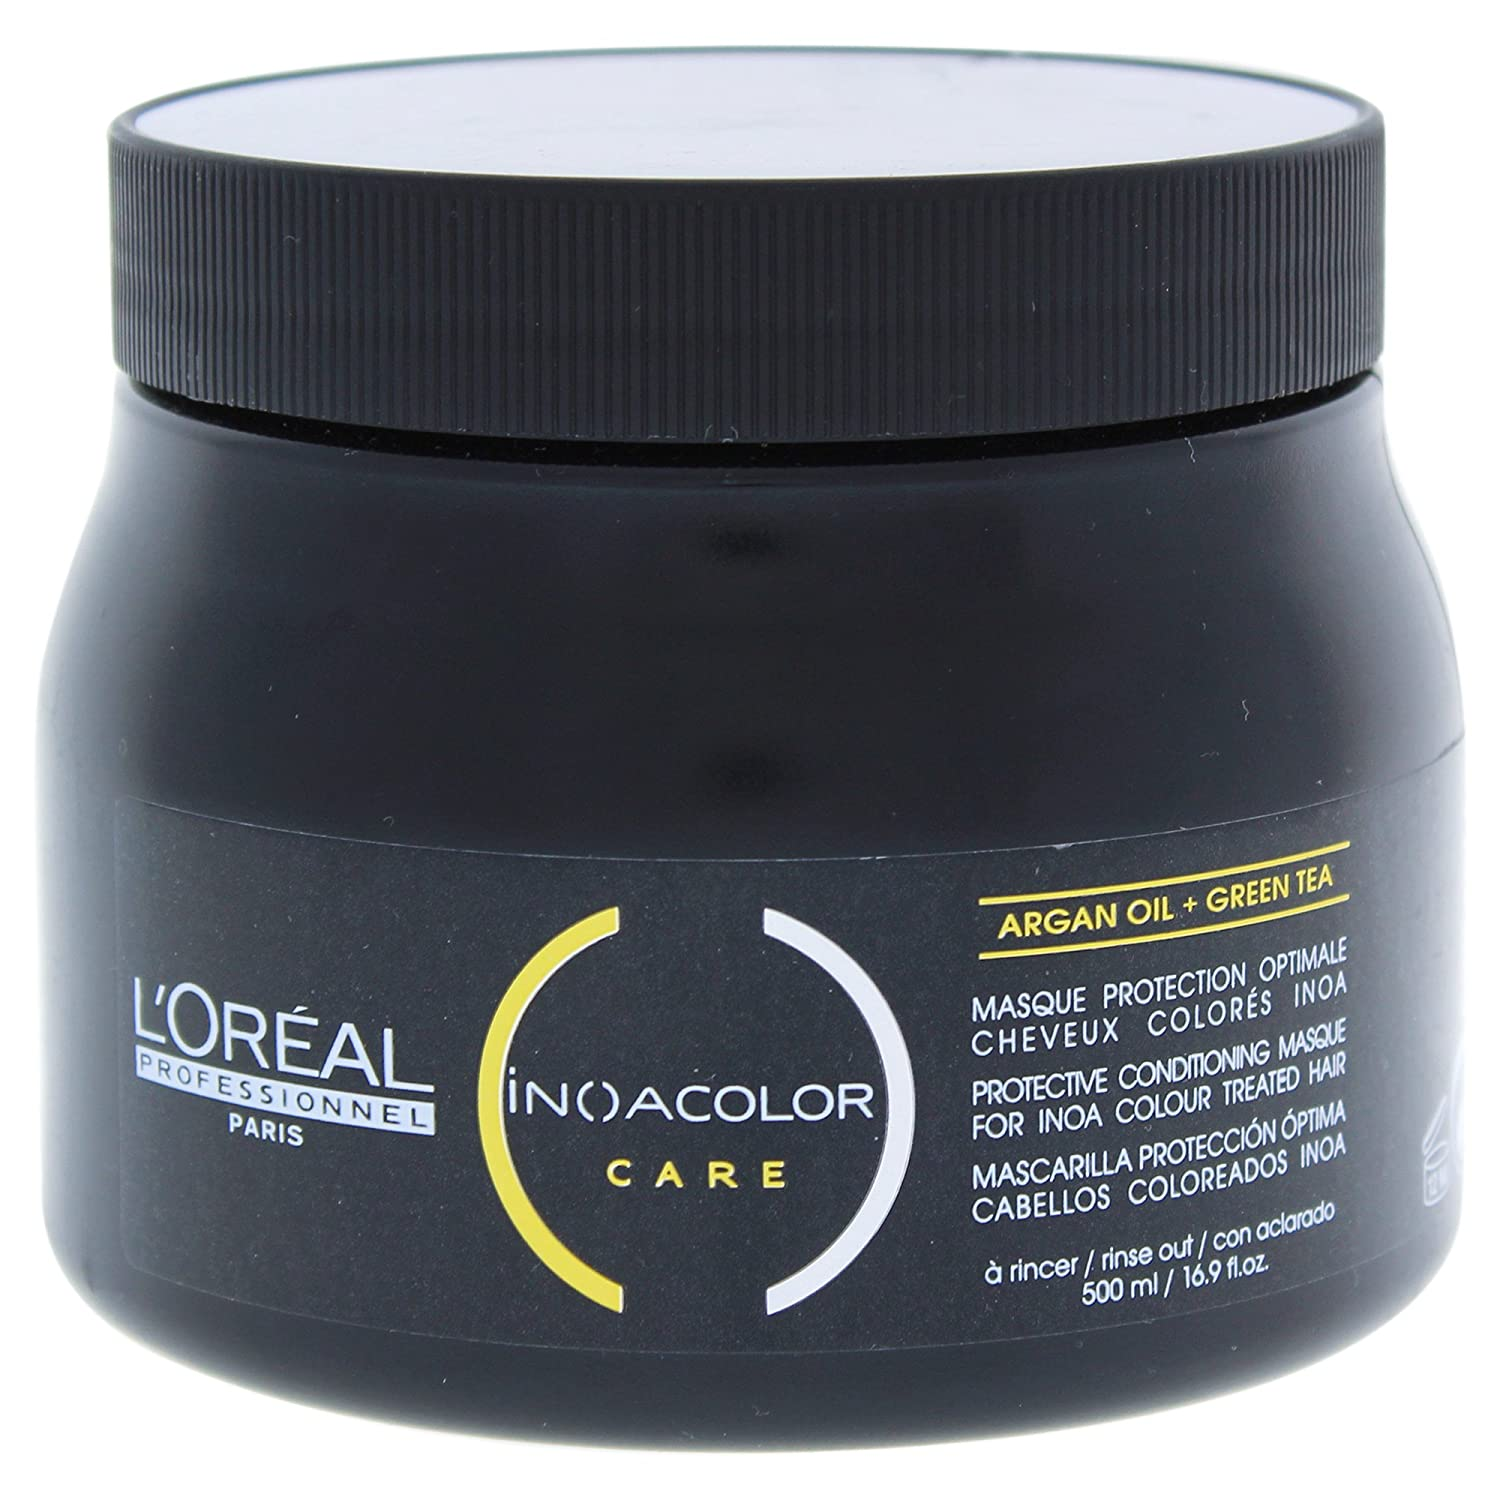 L'Oreal Professionnel Inoa Color Care Masque